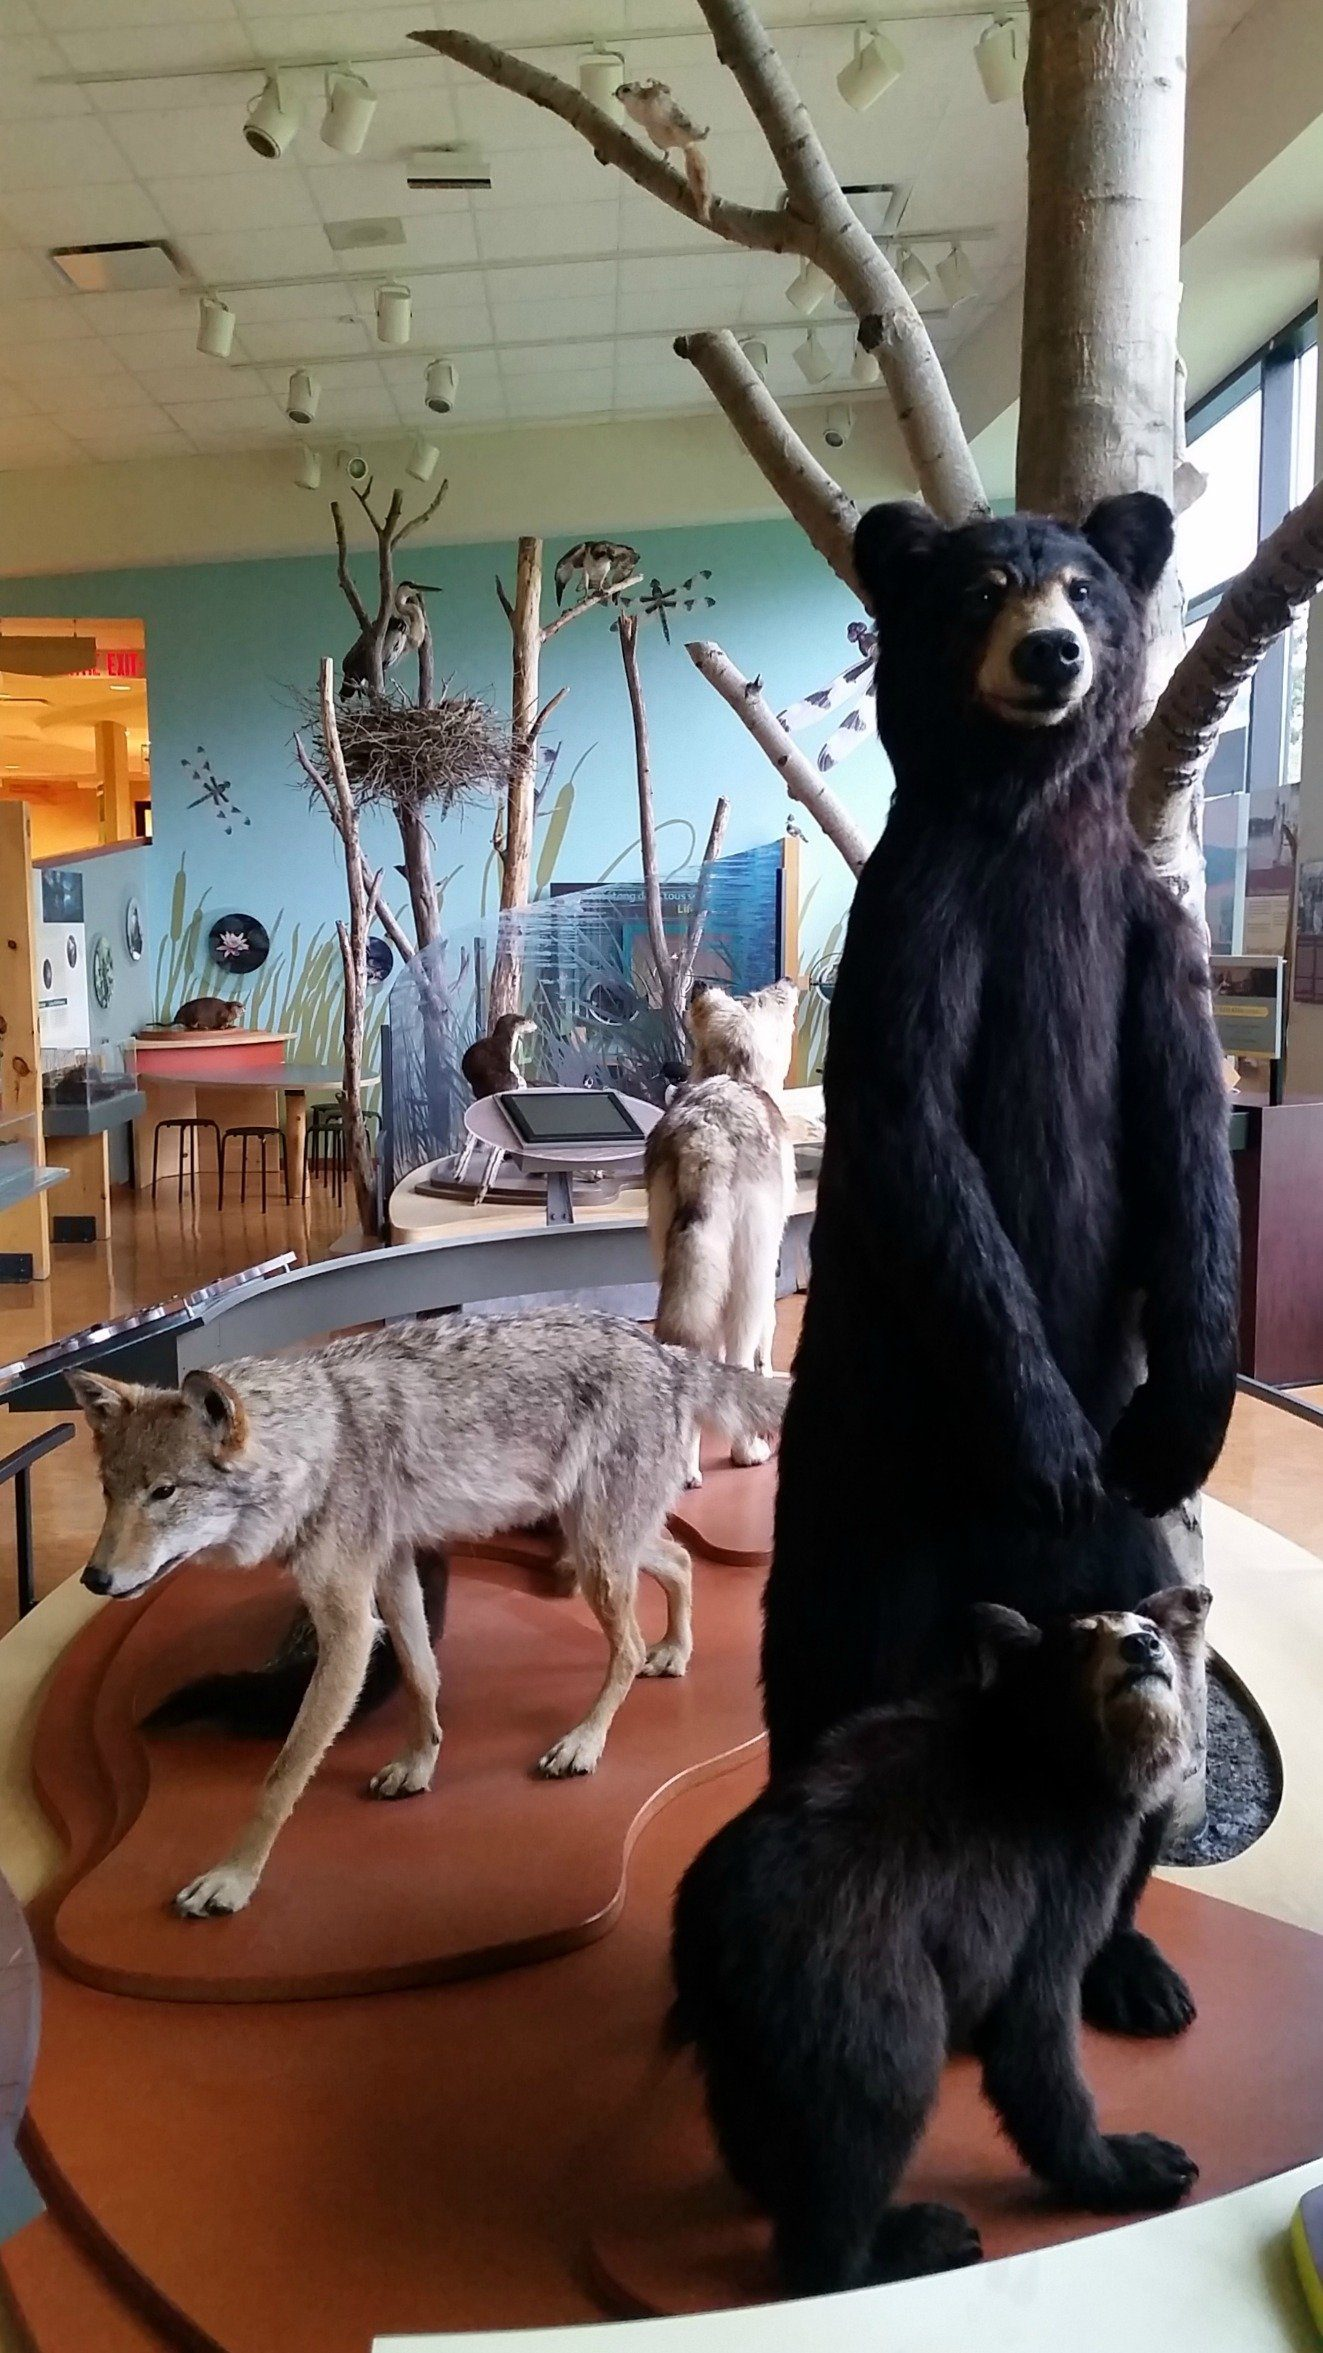 The local wildlife display in the Gatineau Park Visitor Center in Chelsea, Canada